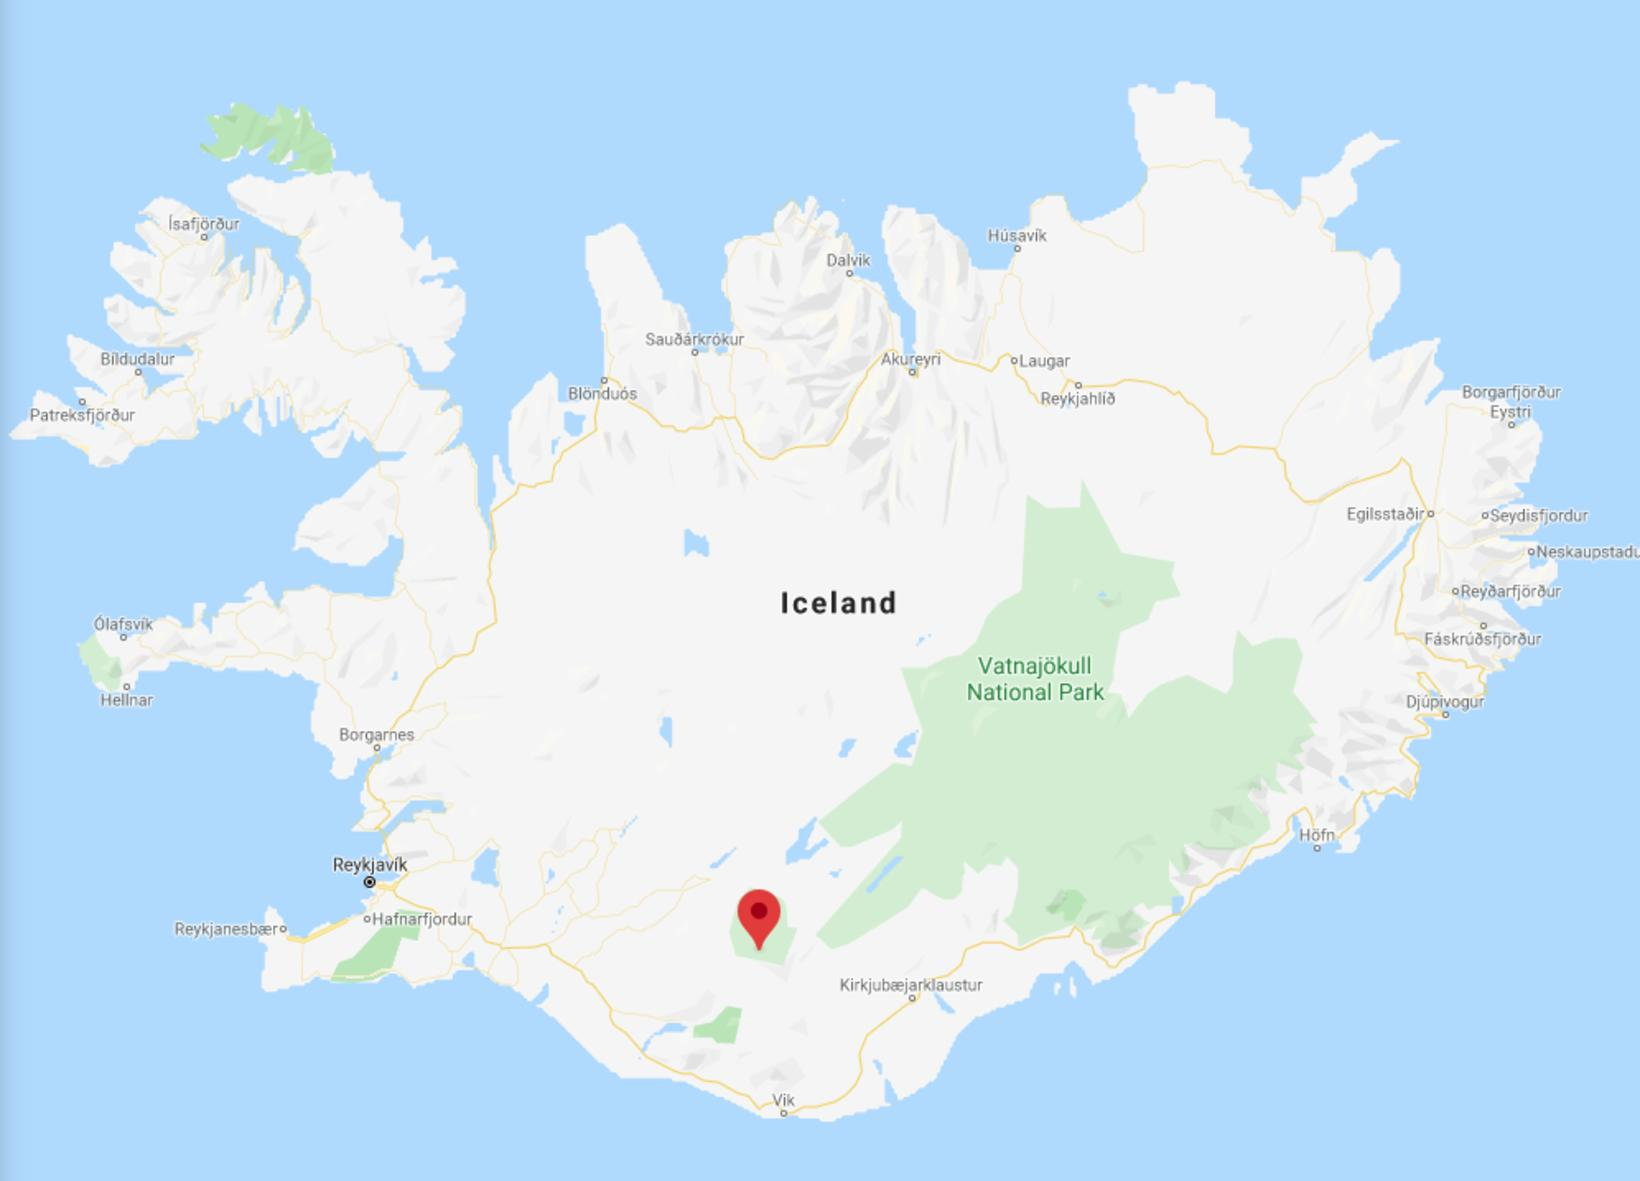 The map shows the location of Hrafntinnusker.